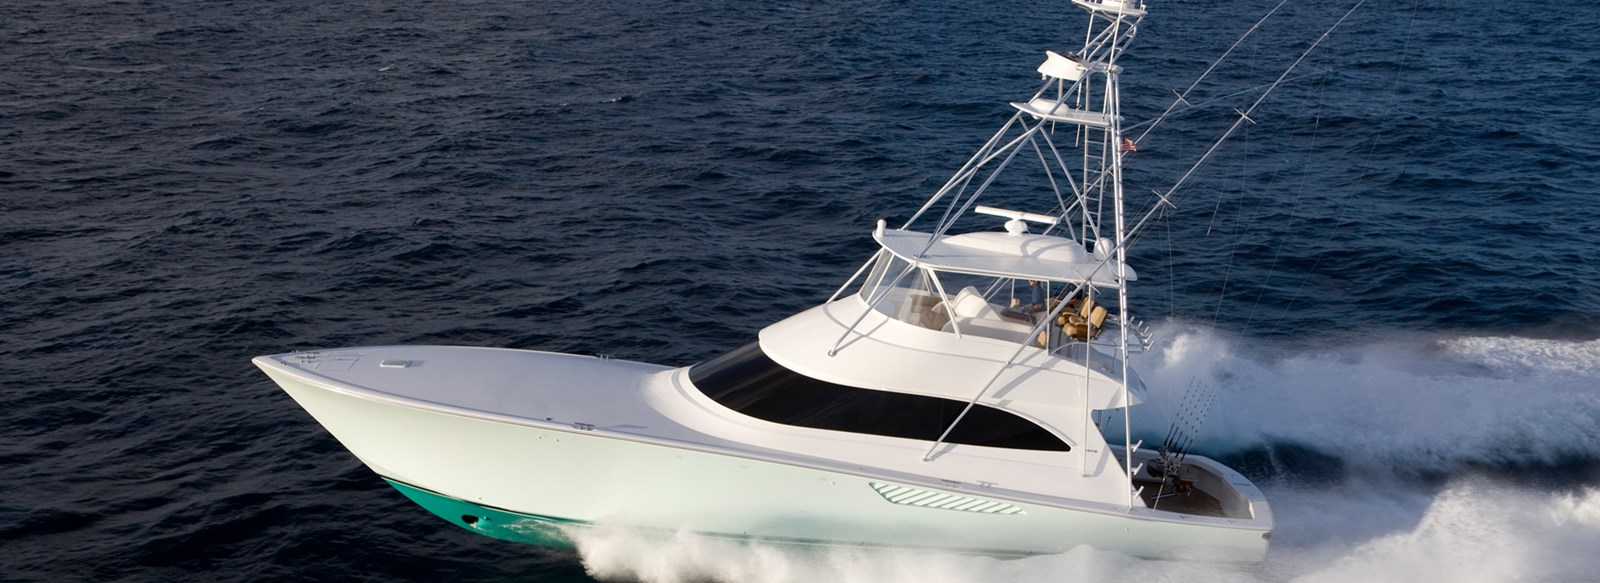 New Viking 66 Convertible Yachts For Sale